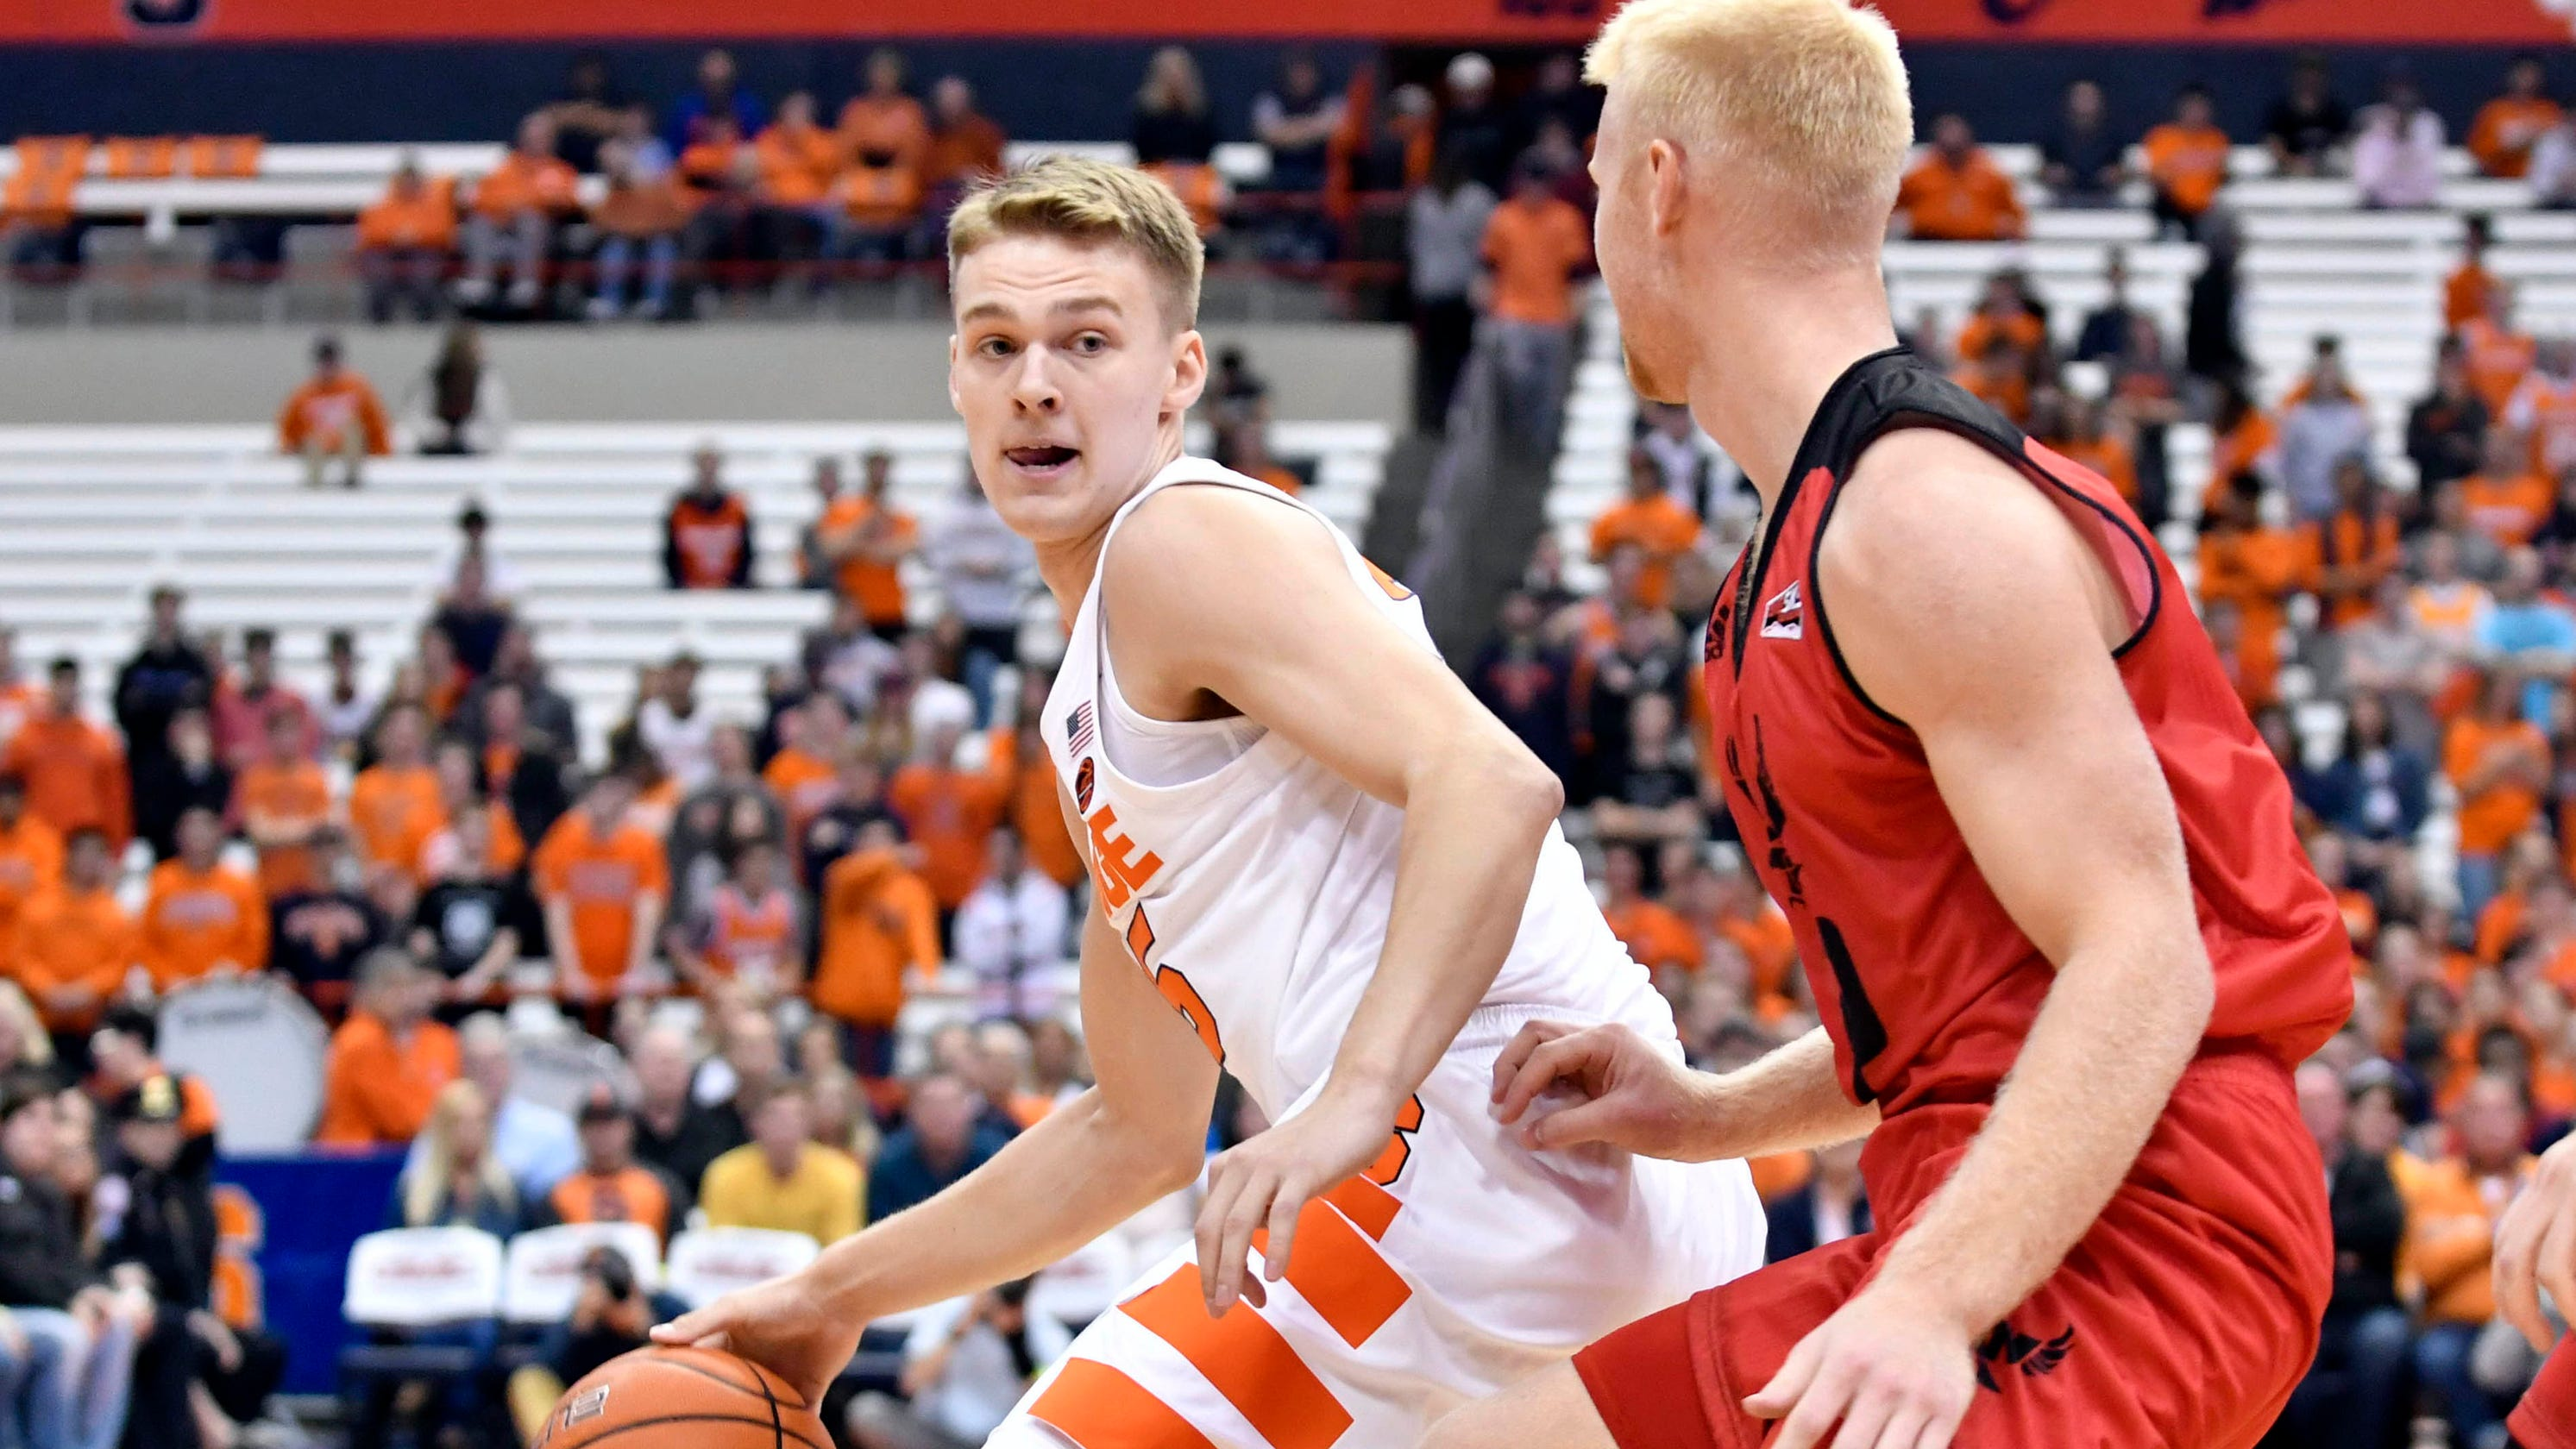 What is Syracuse basketball player Buddy Boeheim's real name?